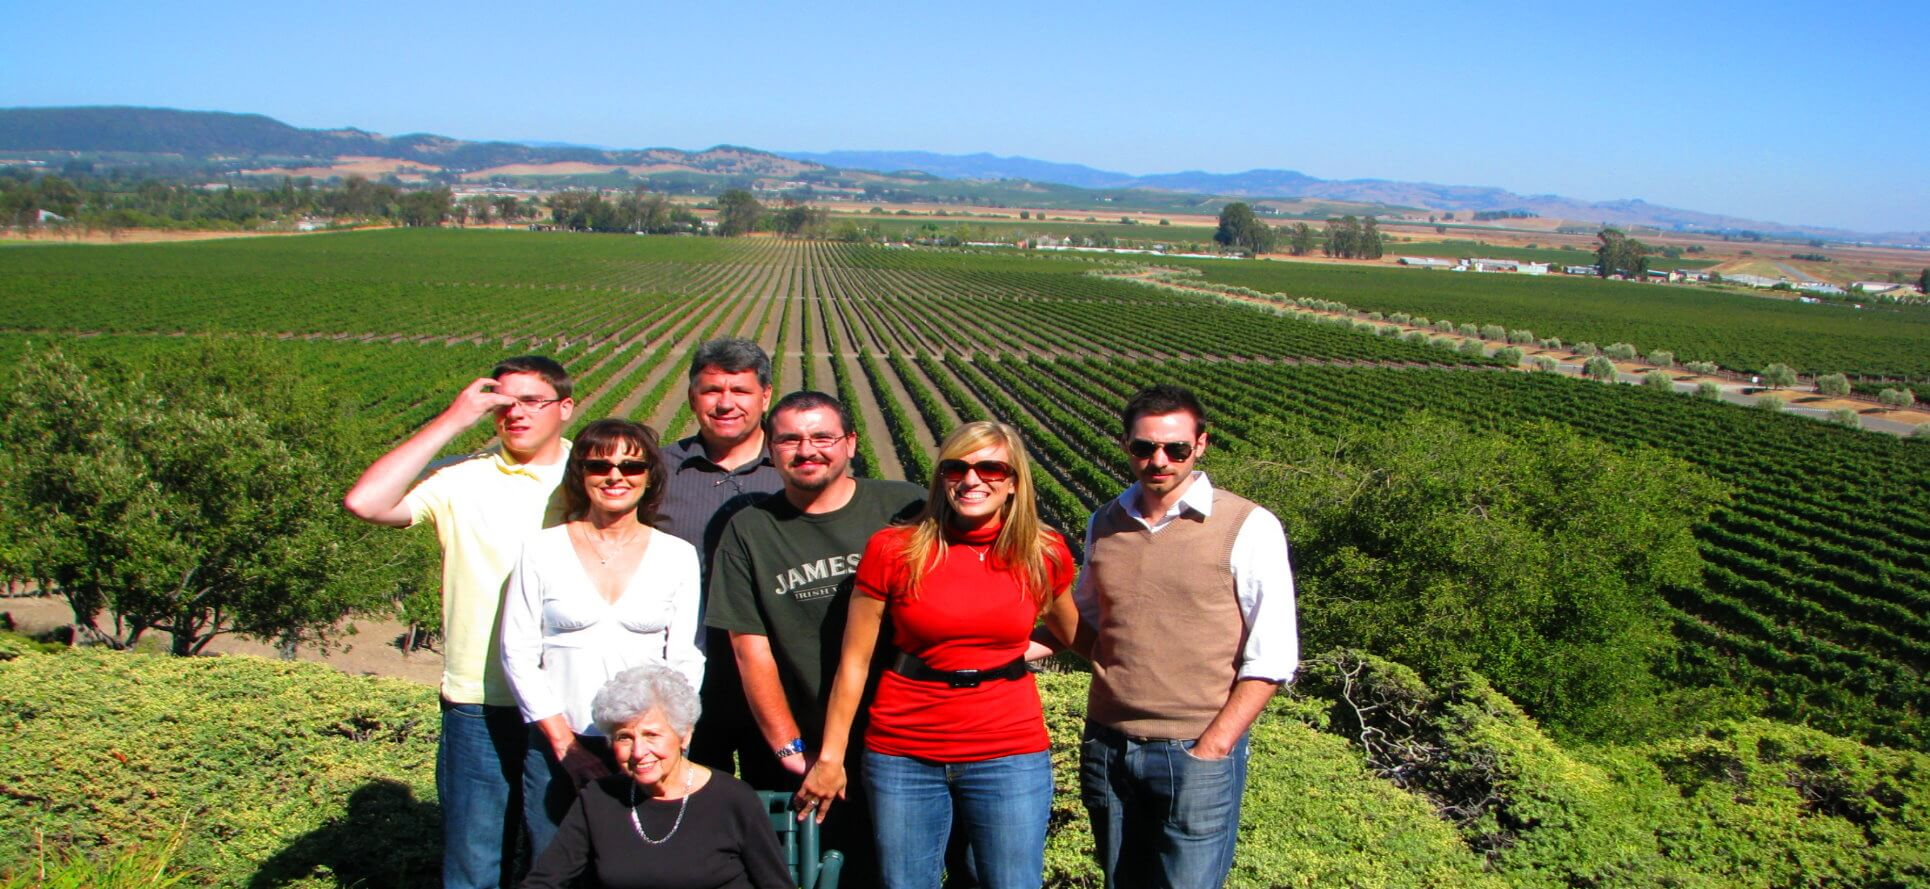 Napa-Valle-wine tour-redwoods-forest-trip-vineyards-sonoma